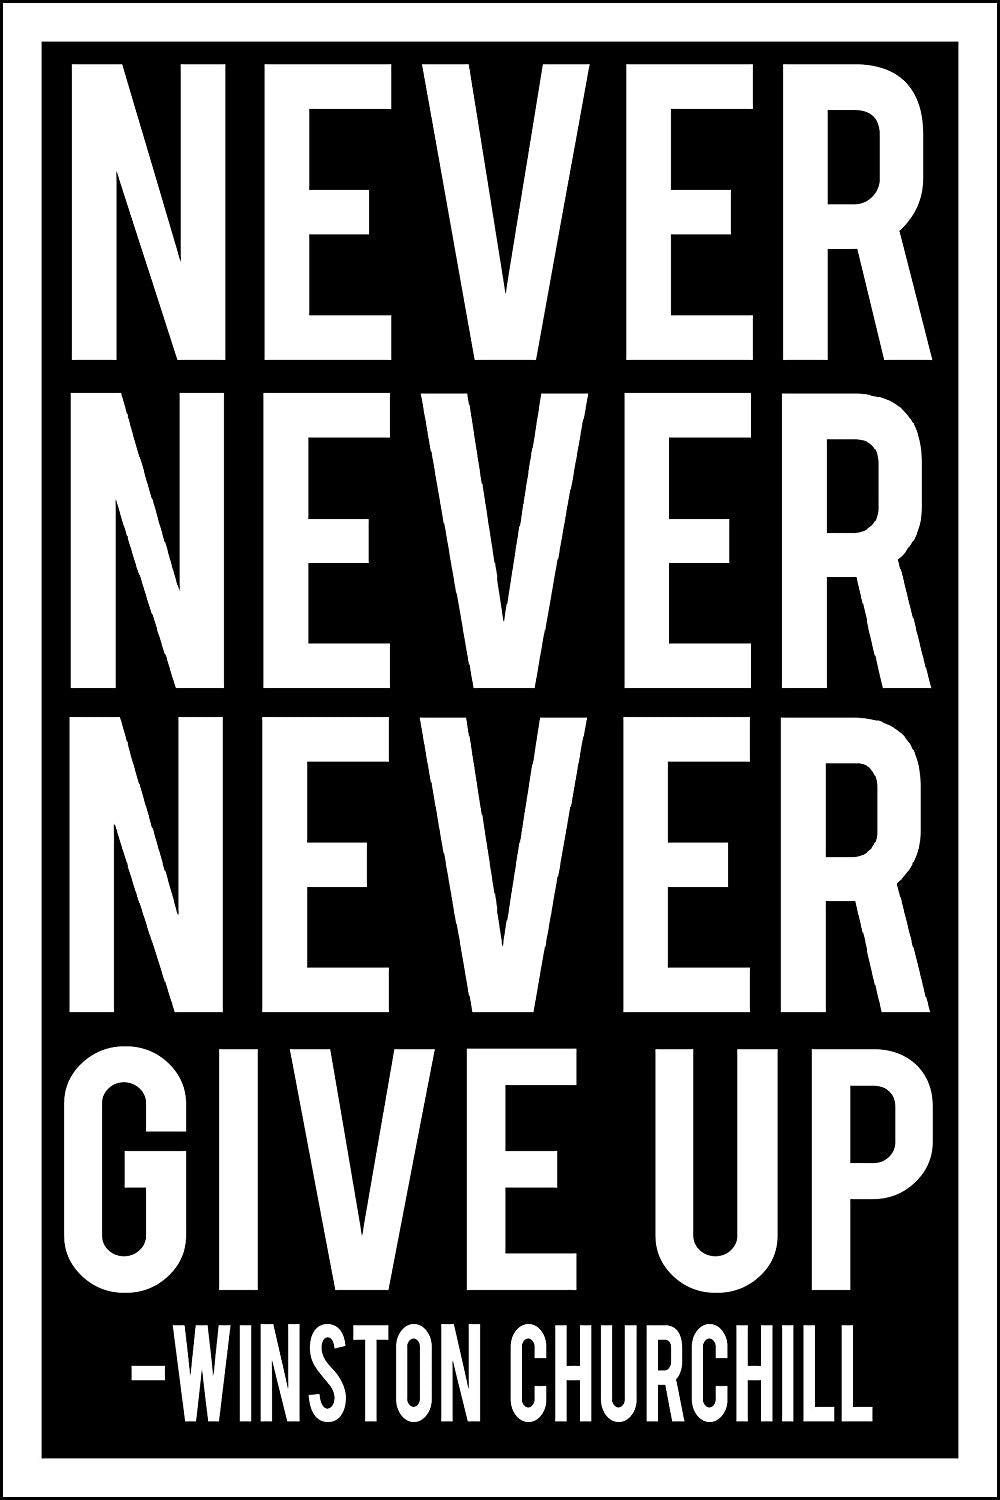 "Spitzy's Never Never Never Give Up Motivational Poster (12"" x 18"" Dimensions Include a White .5"" Border)"